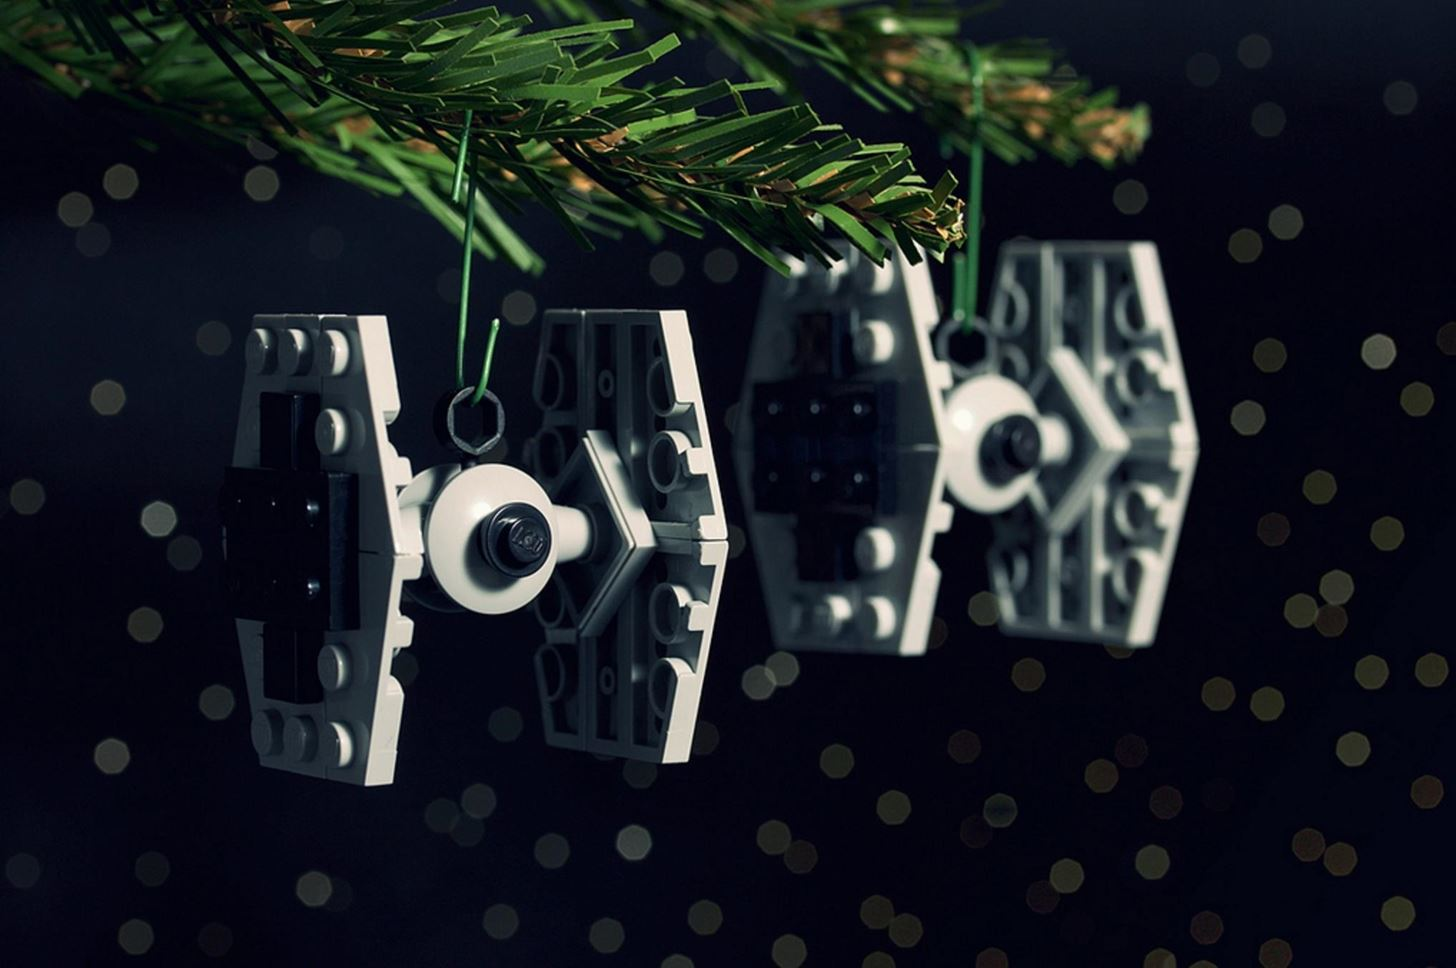 lego tie fighter ornament